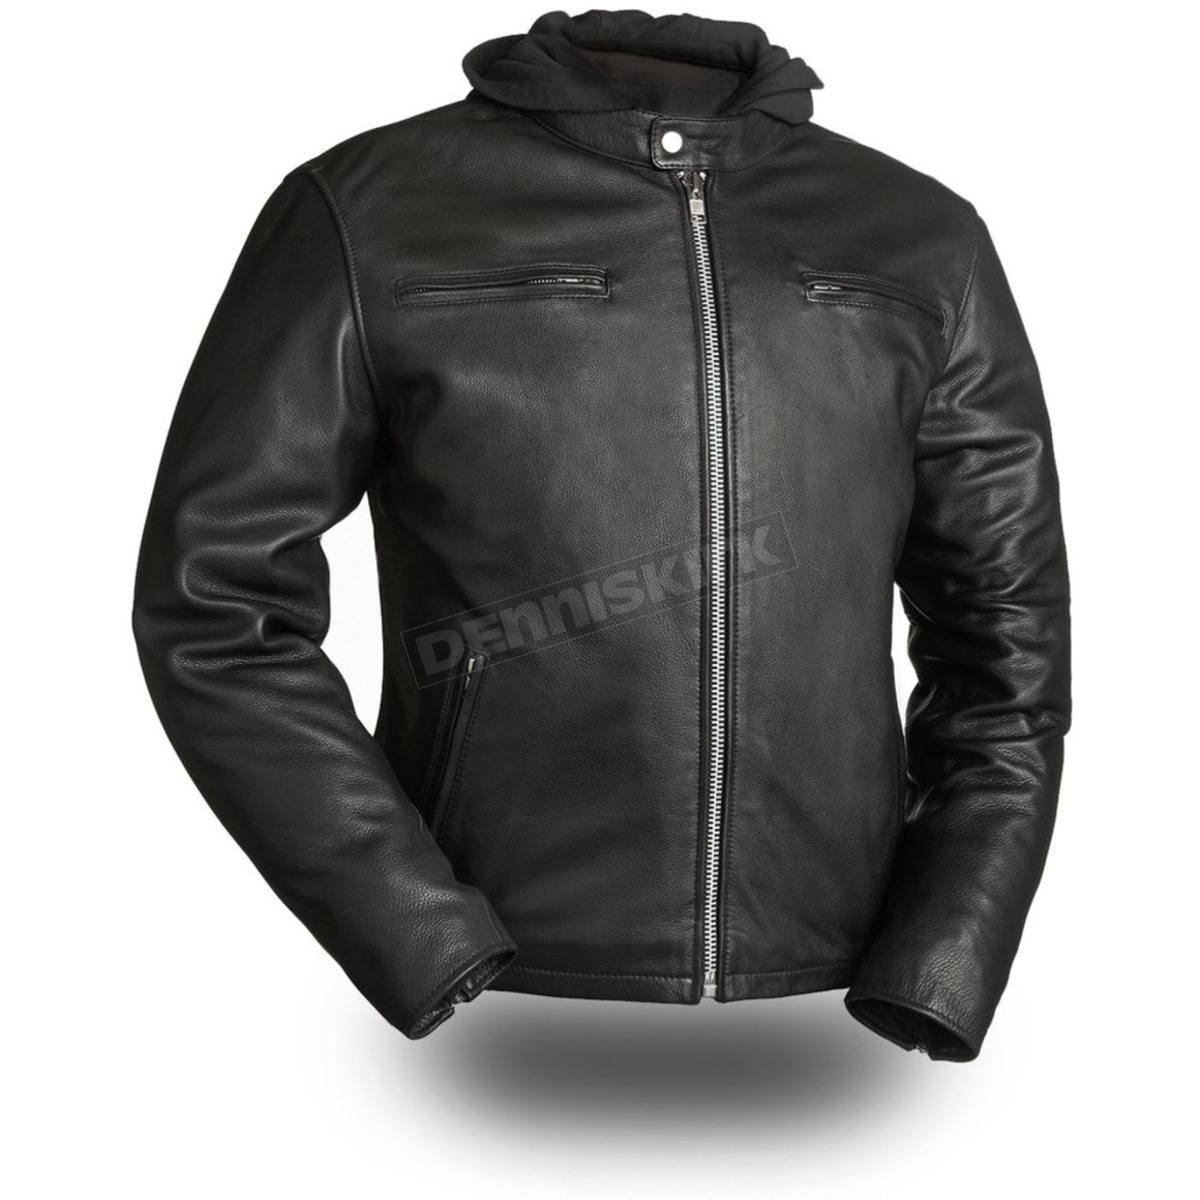 First MFG Co Black, X-Large Mens Motorcycle Leather Jacket - Street Cruiser